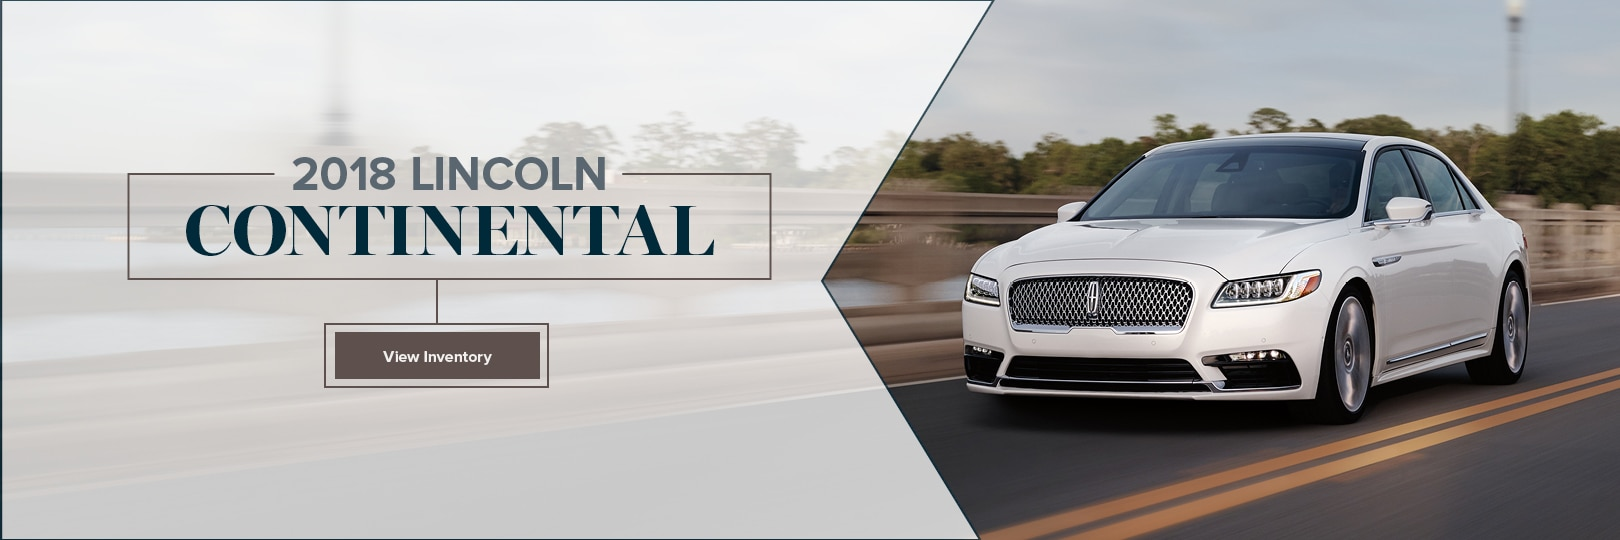 lease lincoln specials austin mkx covert htm in continental new